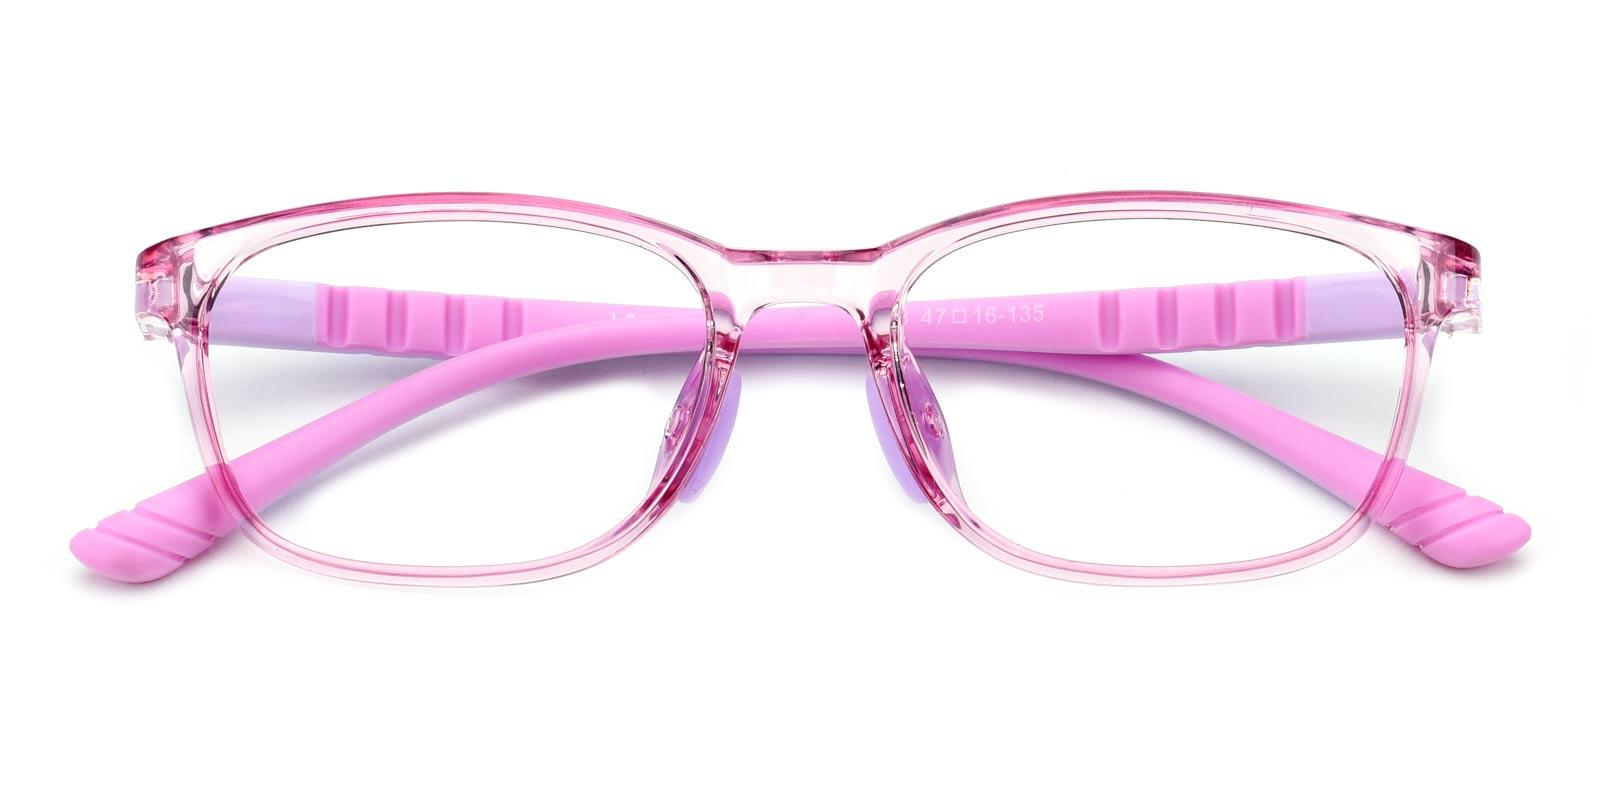 Modesty-Pink-Rectangle-Combination / TR-Eyeglasses-detail